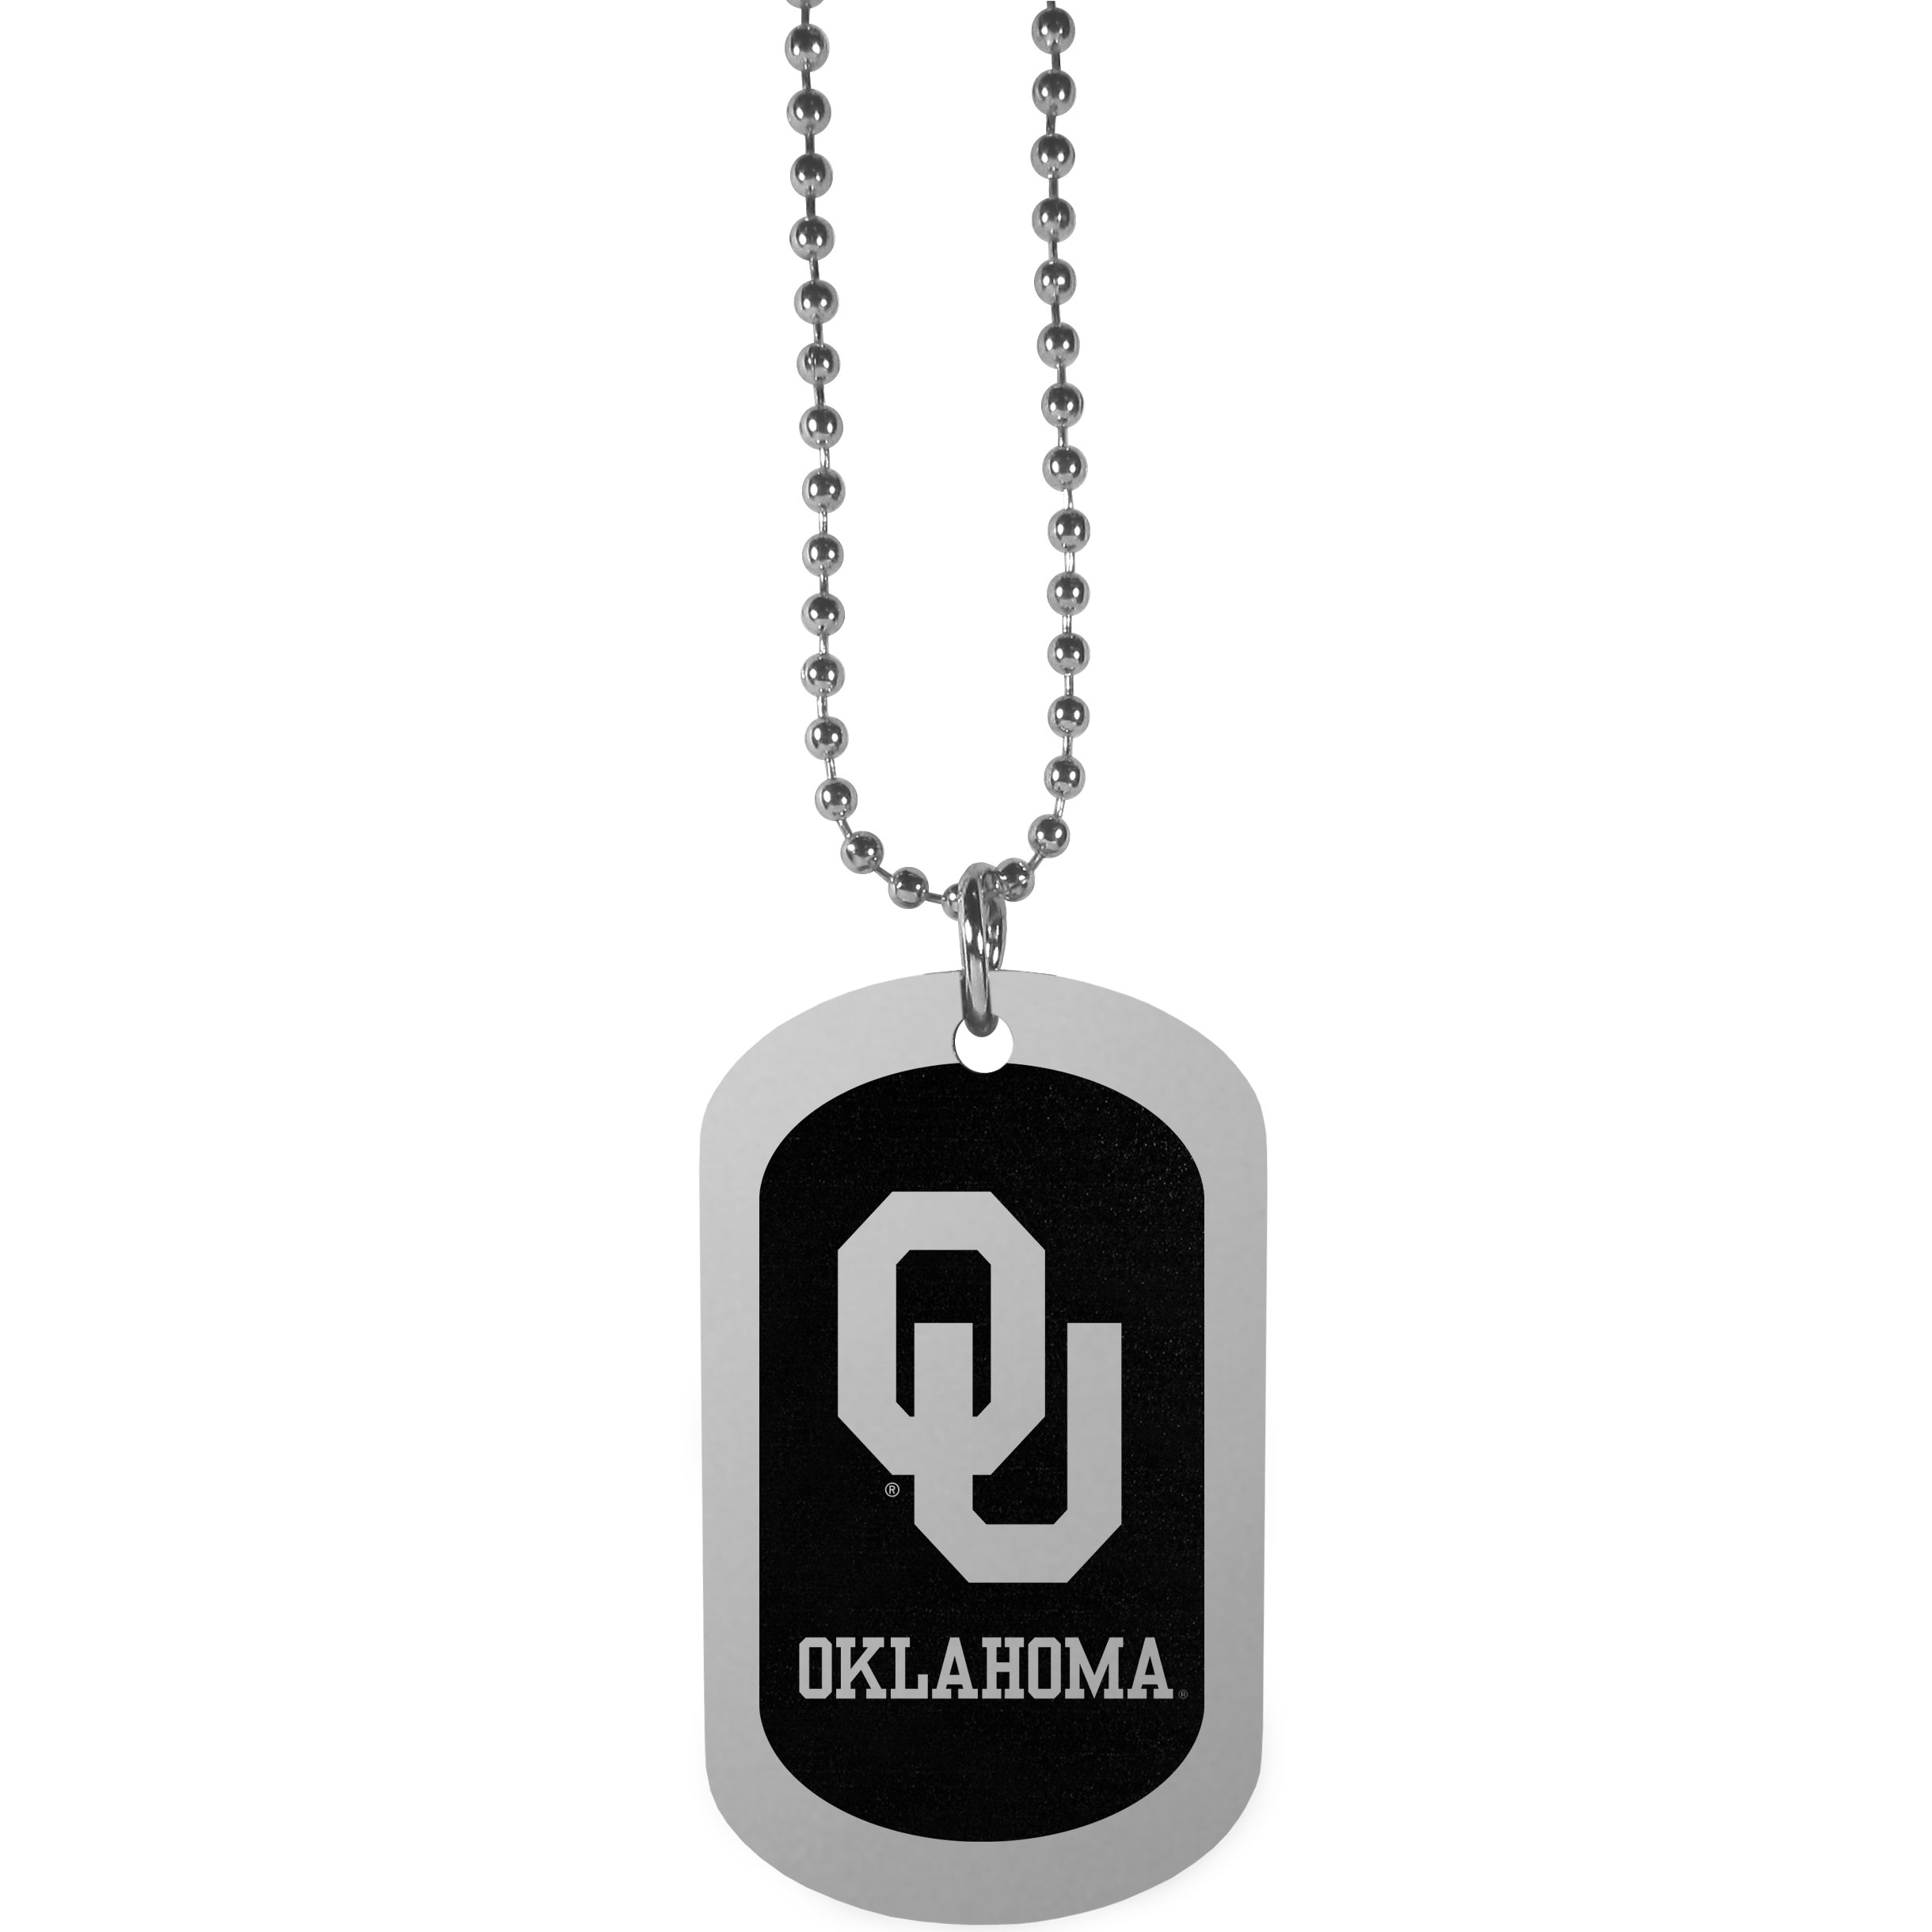 Oklahoma Sooners Chrome Tag Necklace - Dog tag necklaces are a fashion statement that is here to stay. The sporty version of the classic tag features a black printed over a high polish tag to create a bold and sporty look. The tag comes on a 26 inch ball chain with a ball and joint clasp. Any Oklahoma Sooners would be proud to wear this attractive fashion accessory.